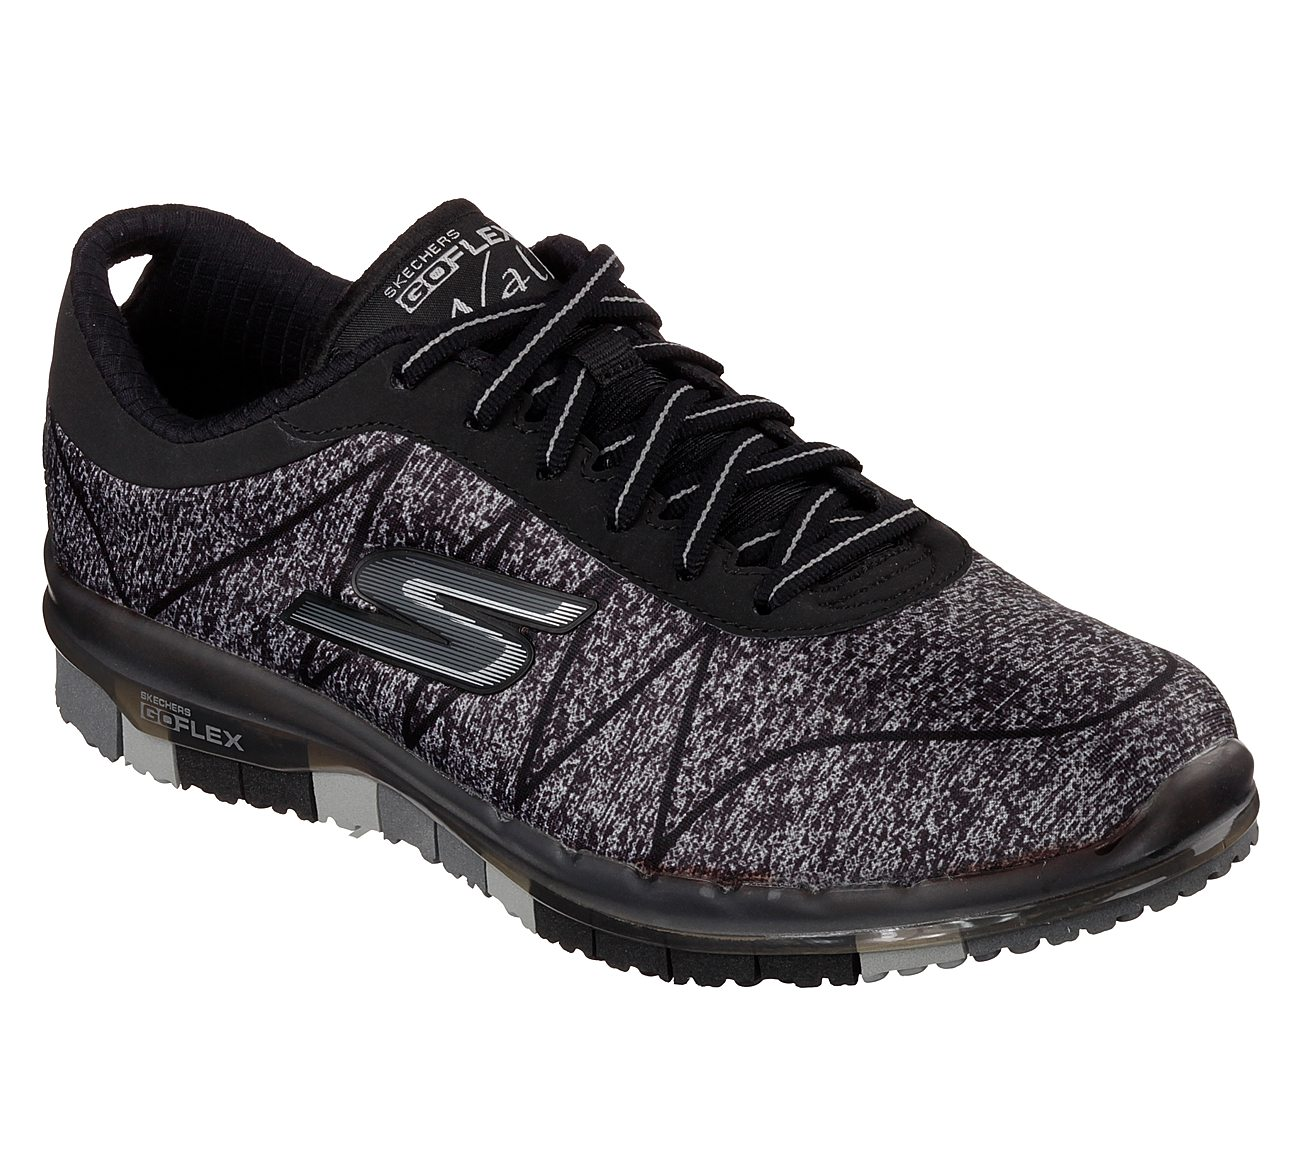 8dd6e8b3077f Buy SKECHERS Skechers GO FLEX Walk - Ability Skechers Performance ...